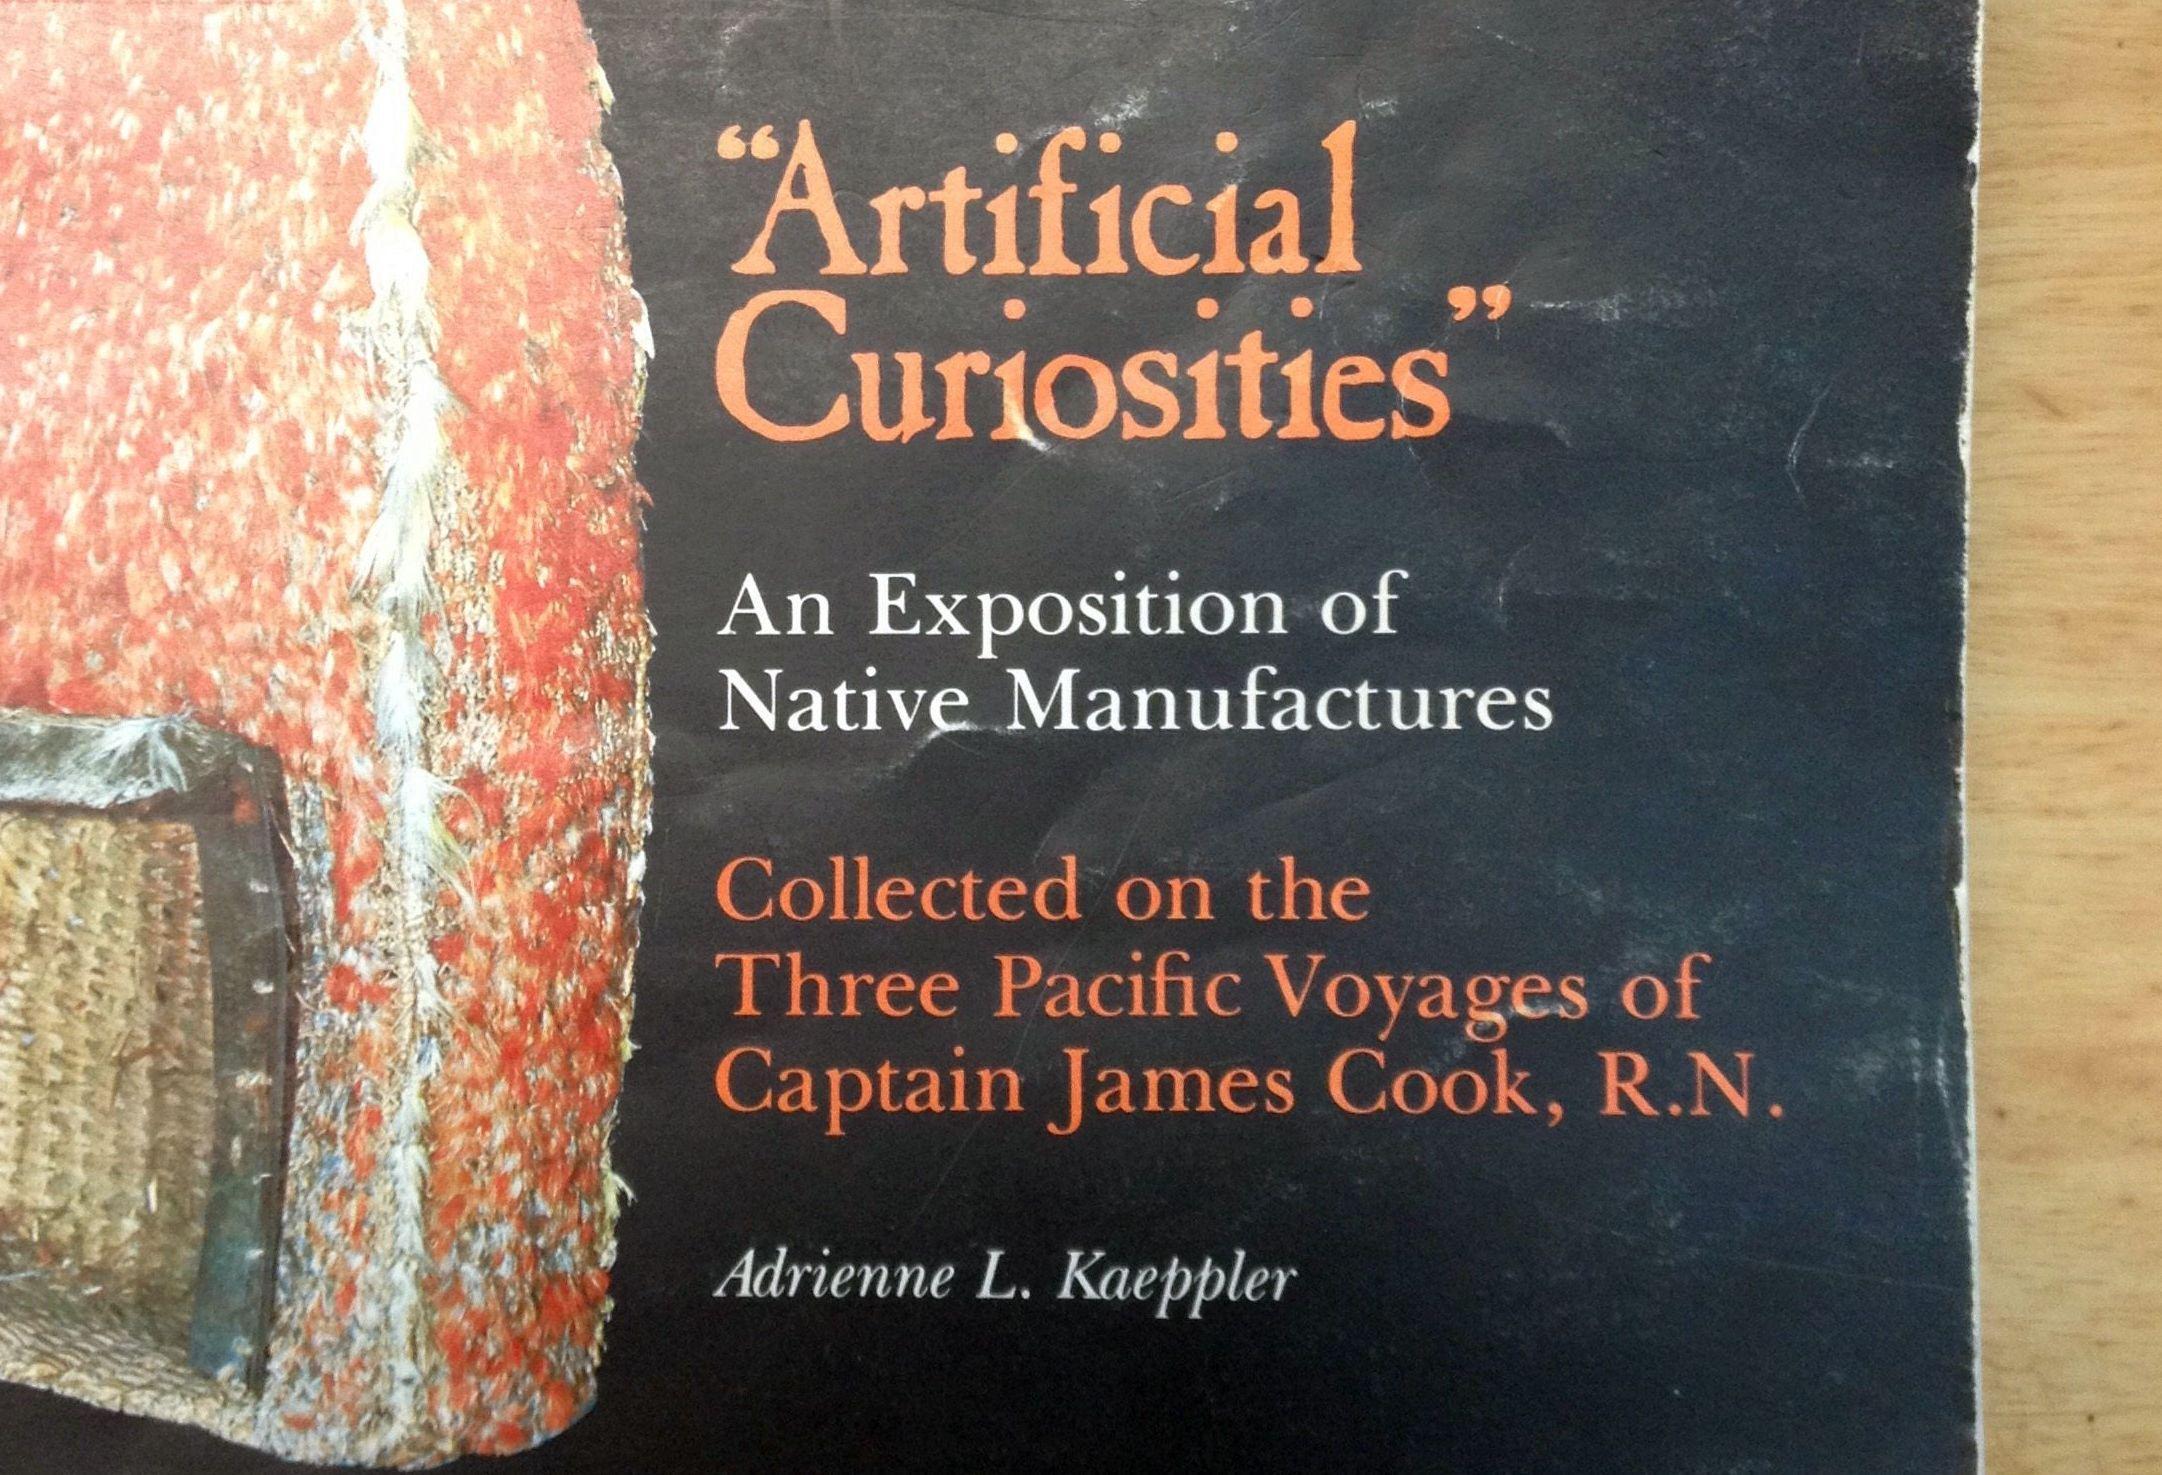 Closeup of a detail of the front cover of a book showing its title